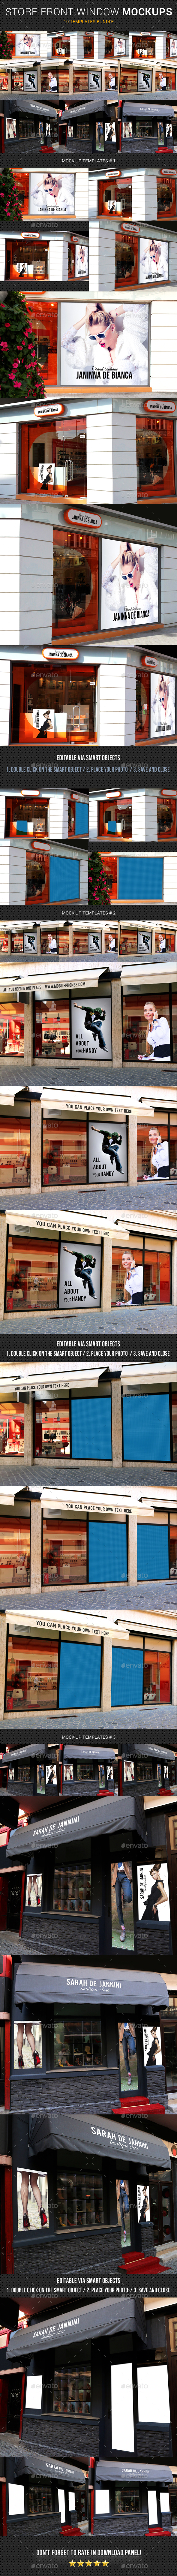 Store Front Window Mock-Up Bundle - Posters Print